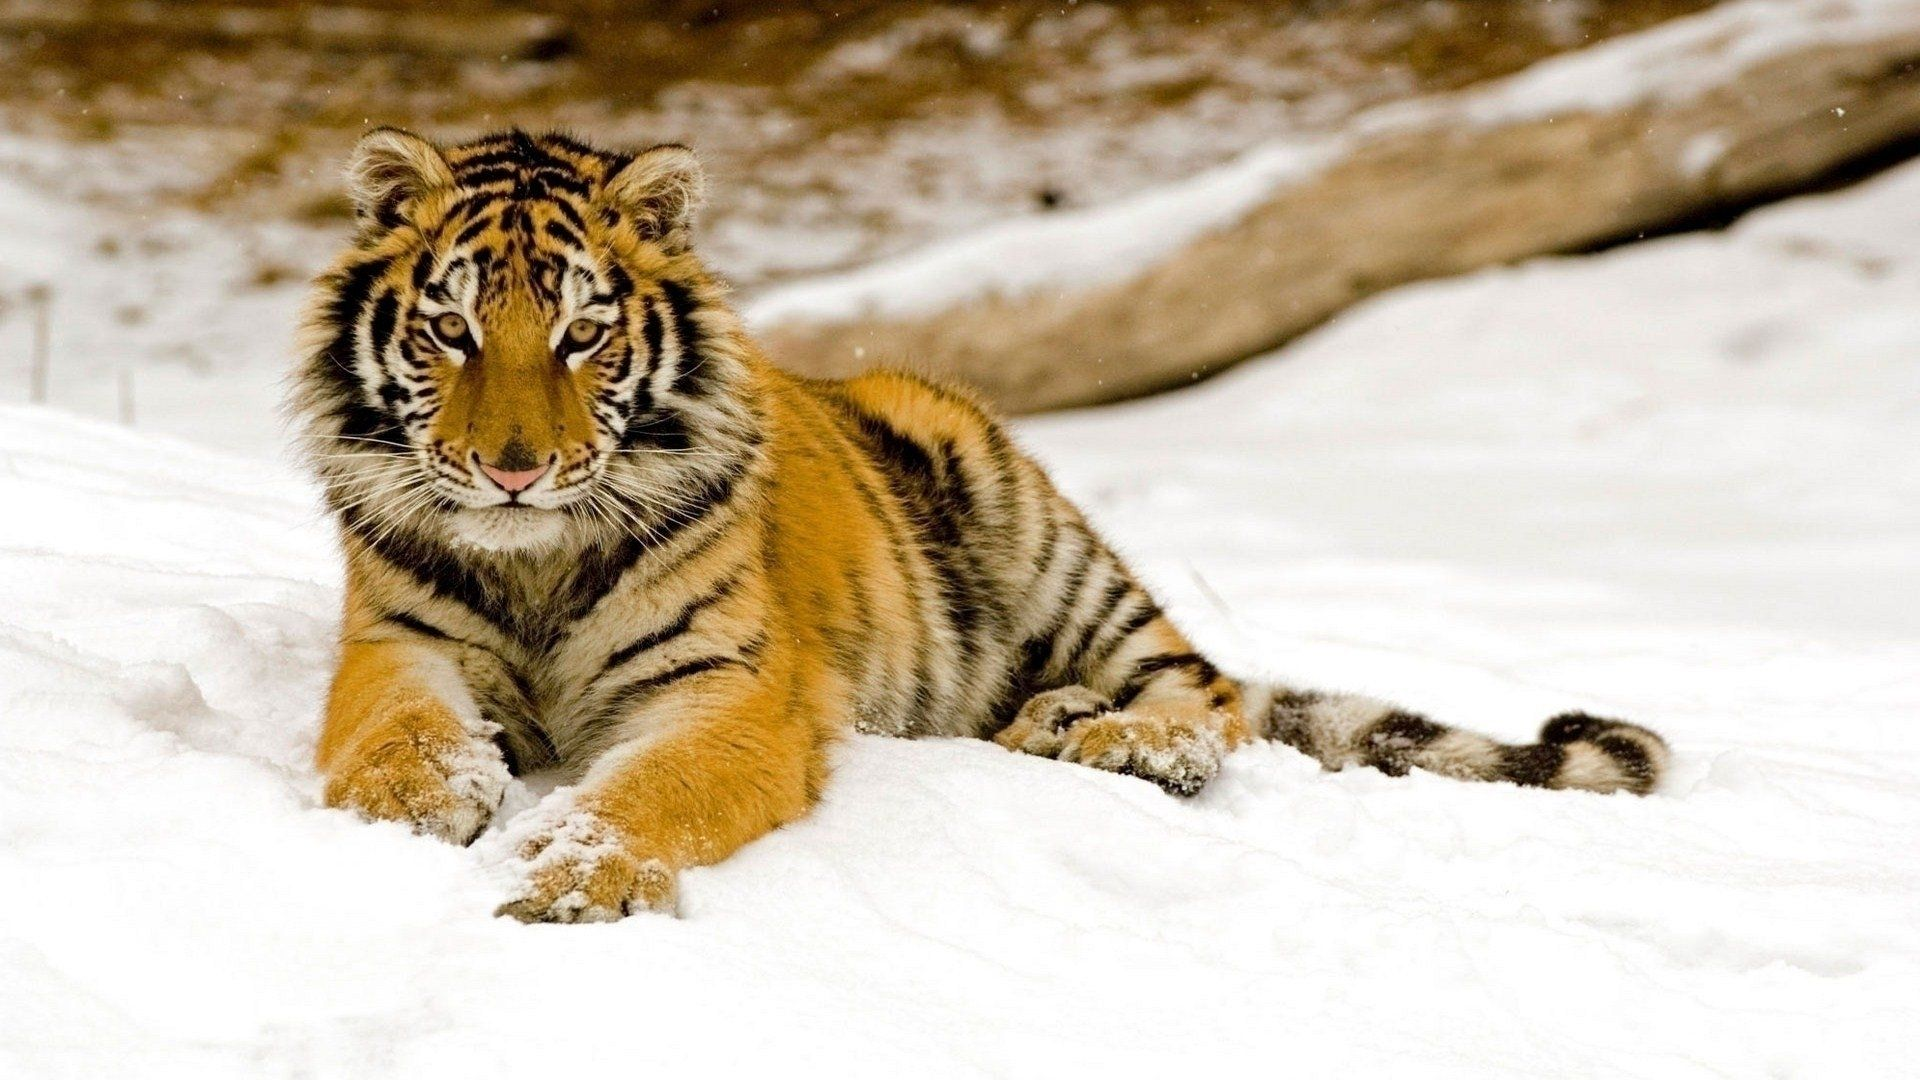 tiger wallpapers collection for free download | hd wallpapers